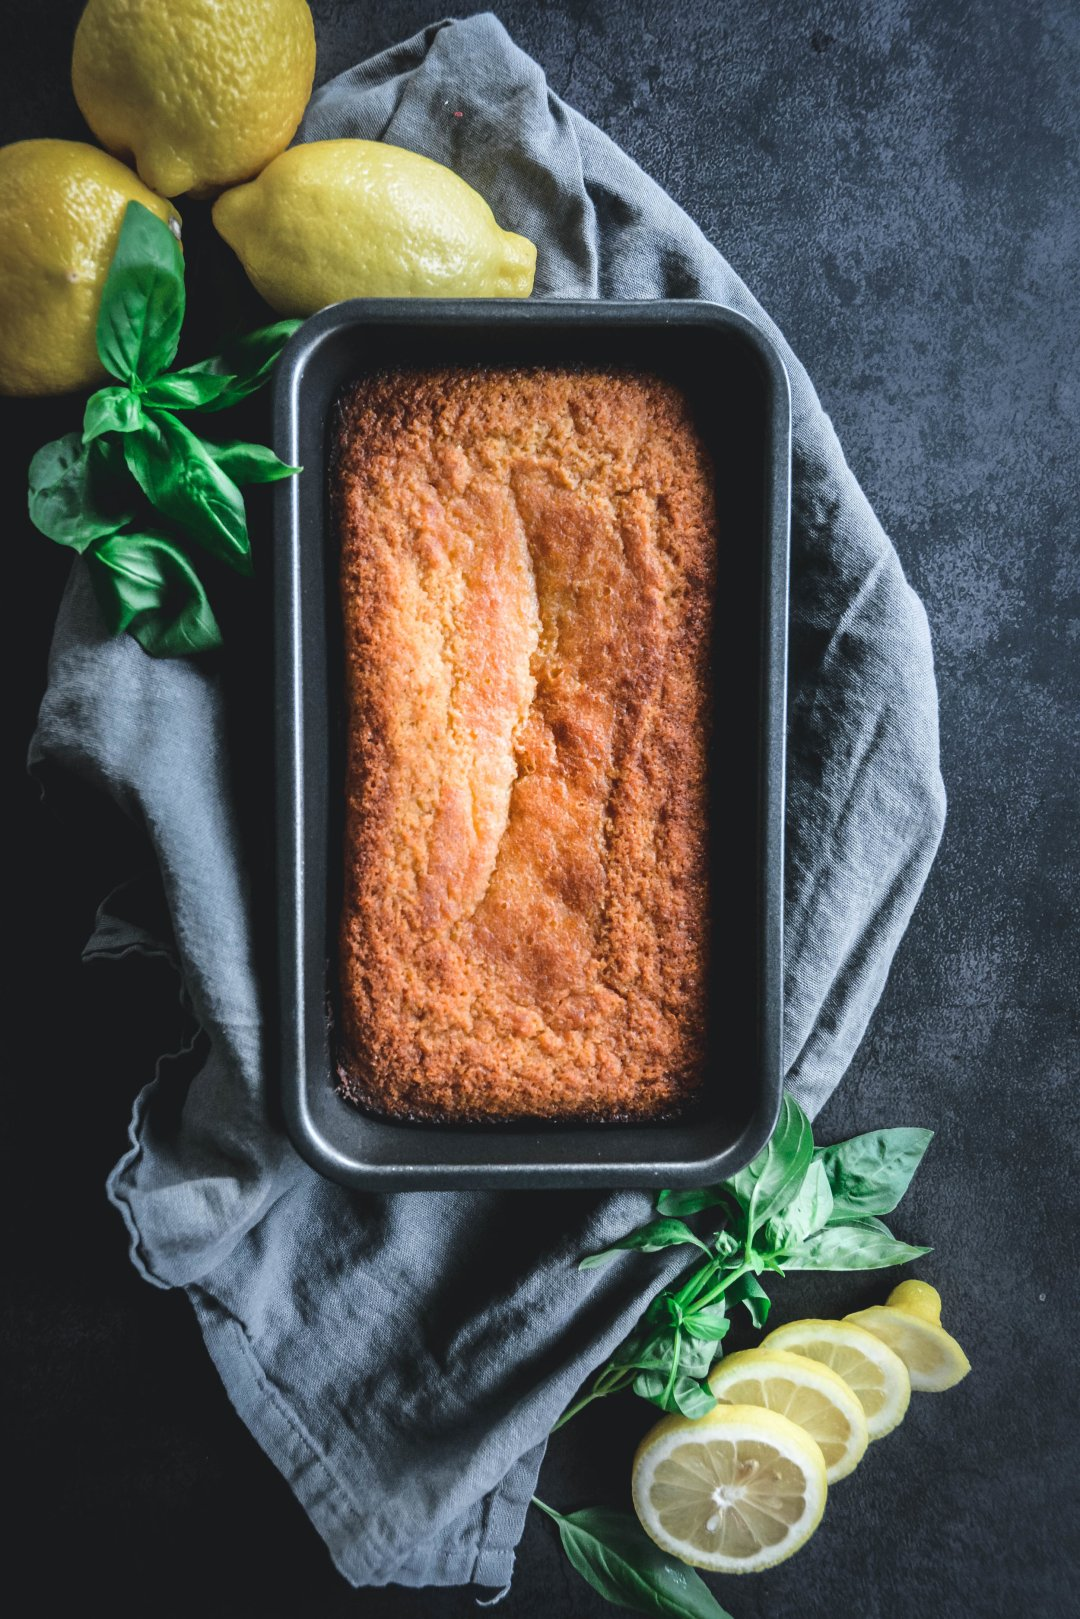 Loaf cake in pan on napkin with lemons